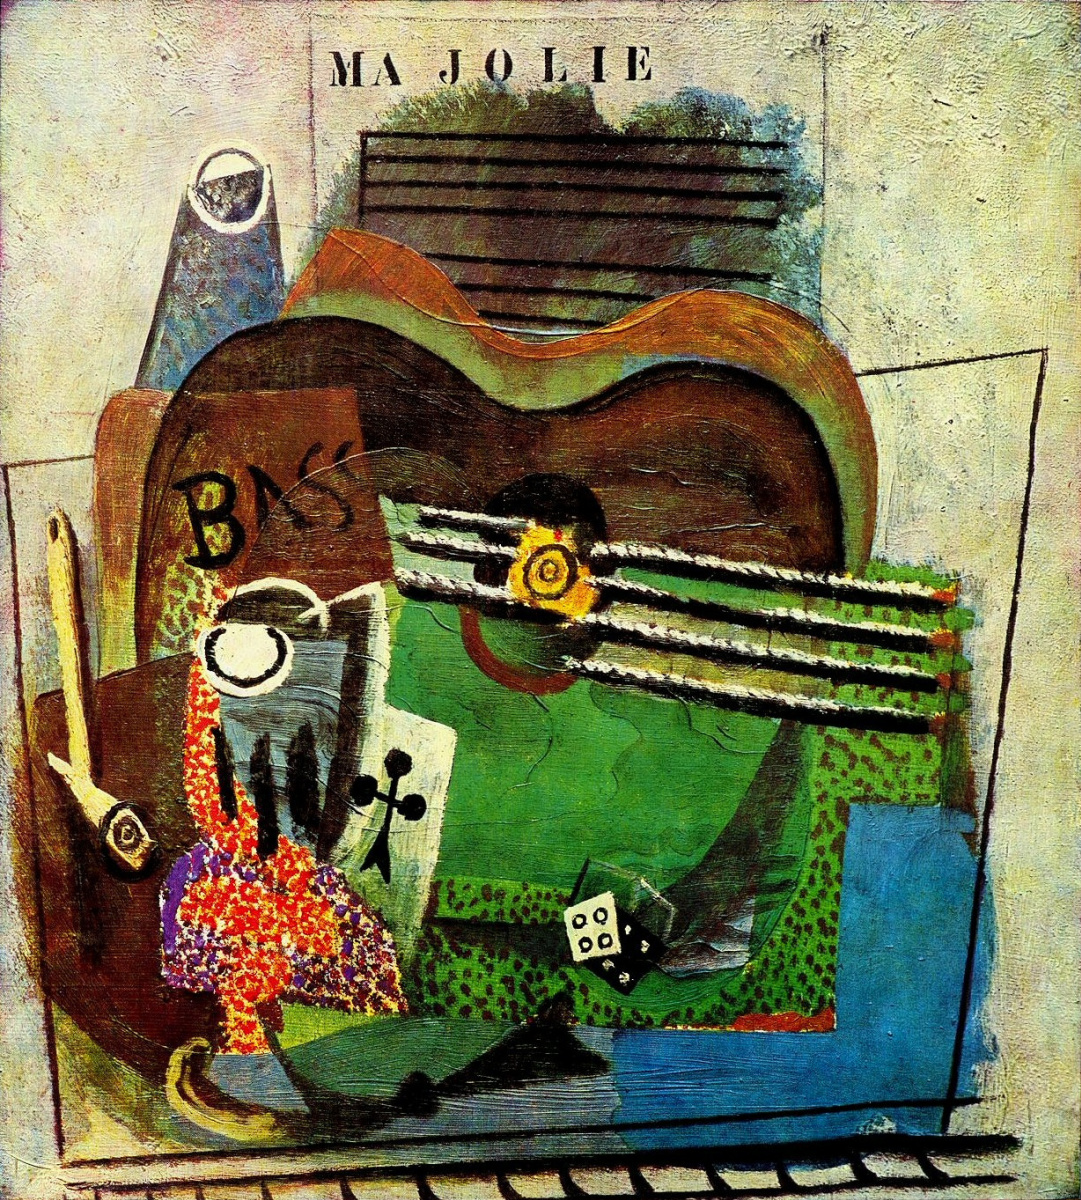 Pablo Picasso. Pipe, glass, ACE of clubs, guitar and bottle of bass (Ma Jolie)